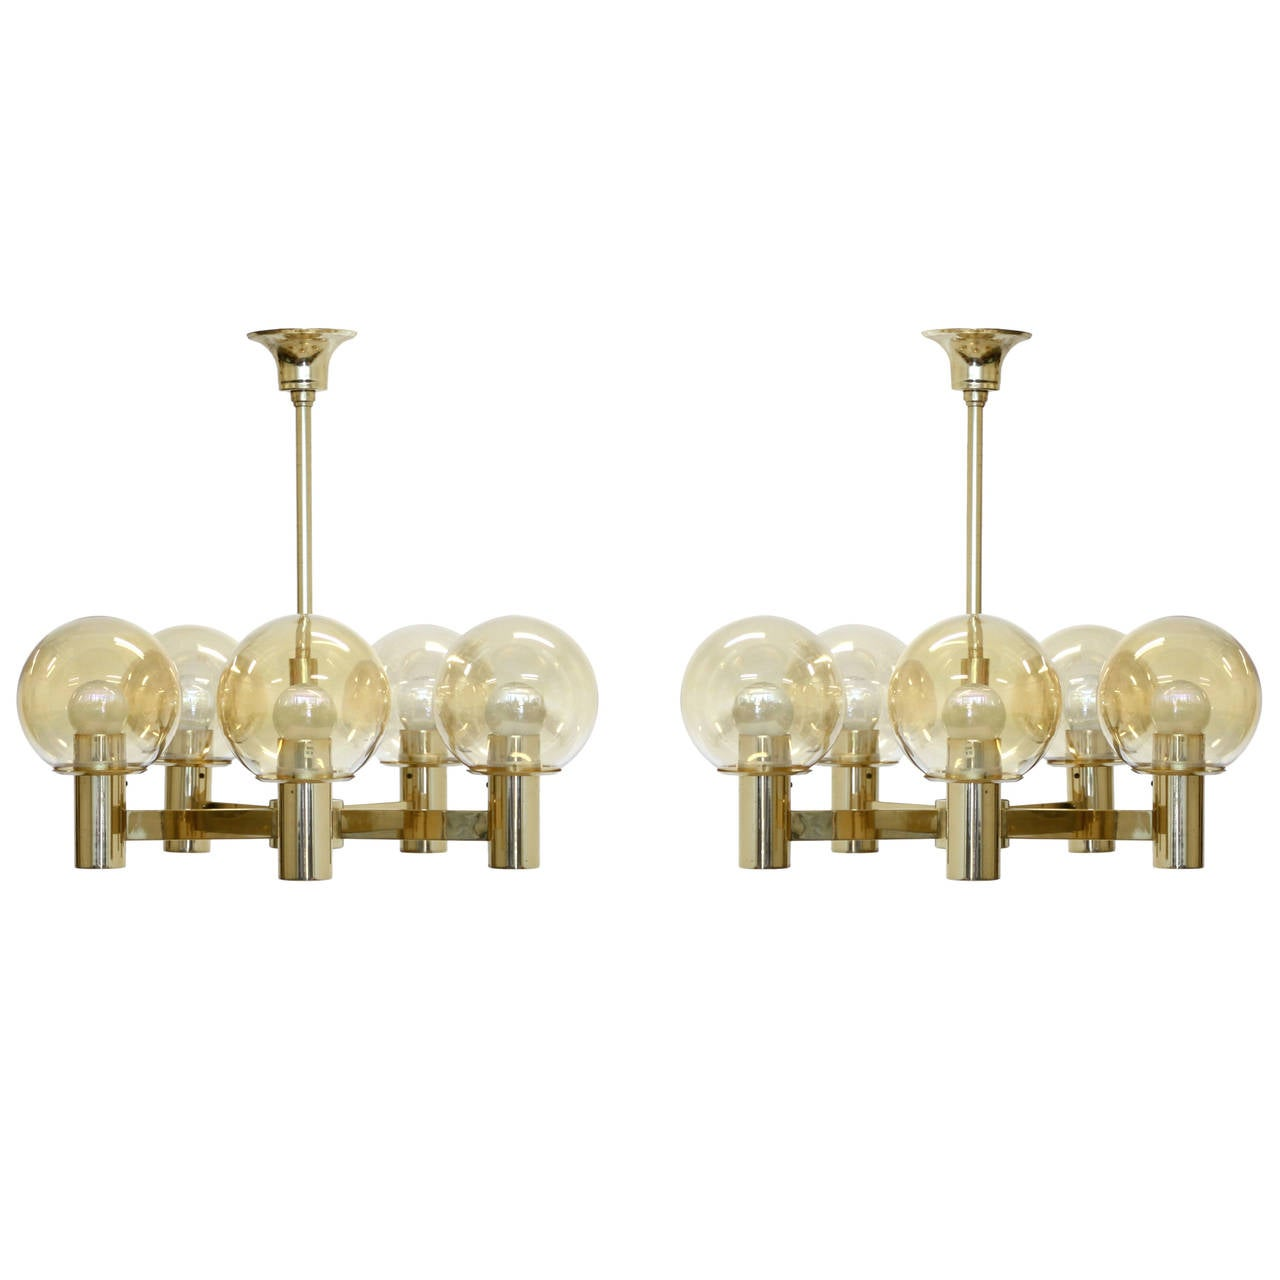 Pair of Brass Chandeliers by H vik Lys at 1stdibs – Brass Chandeliers